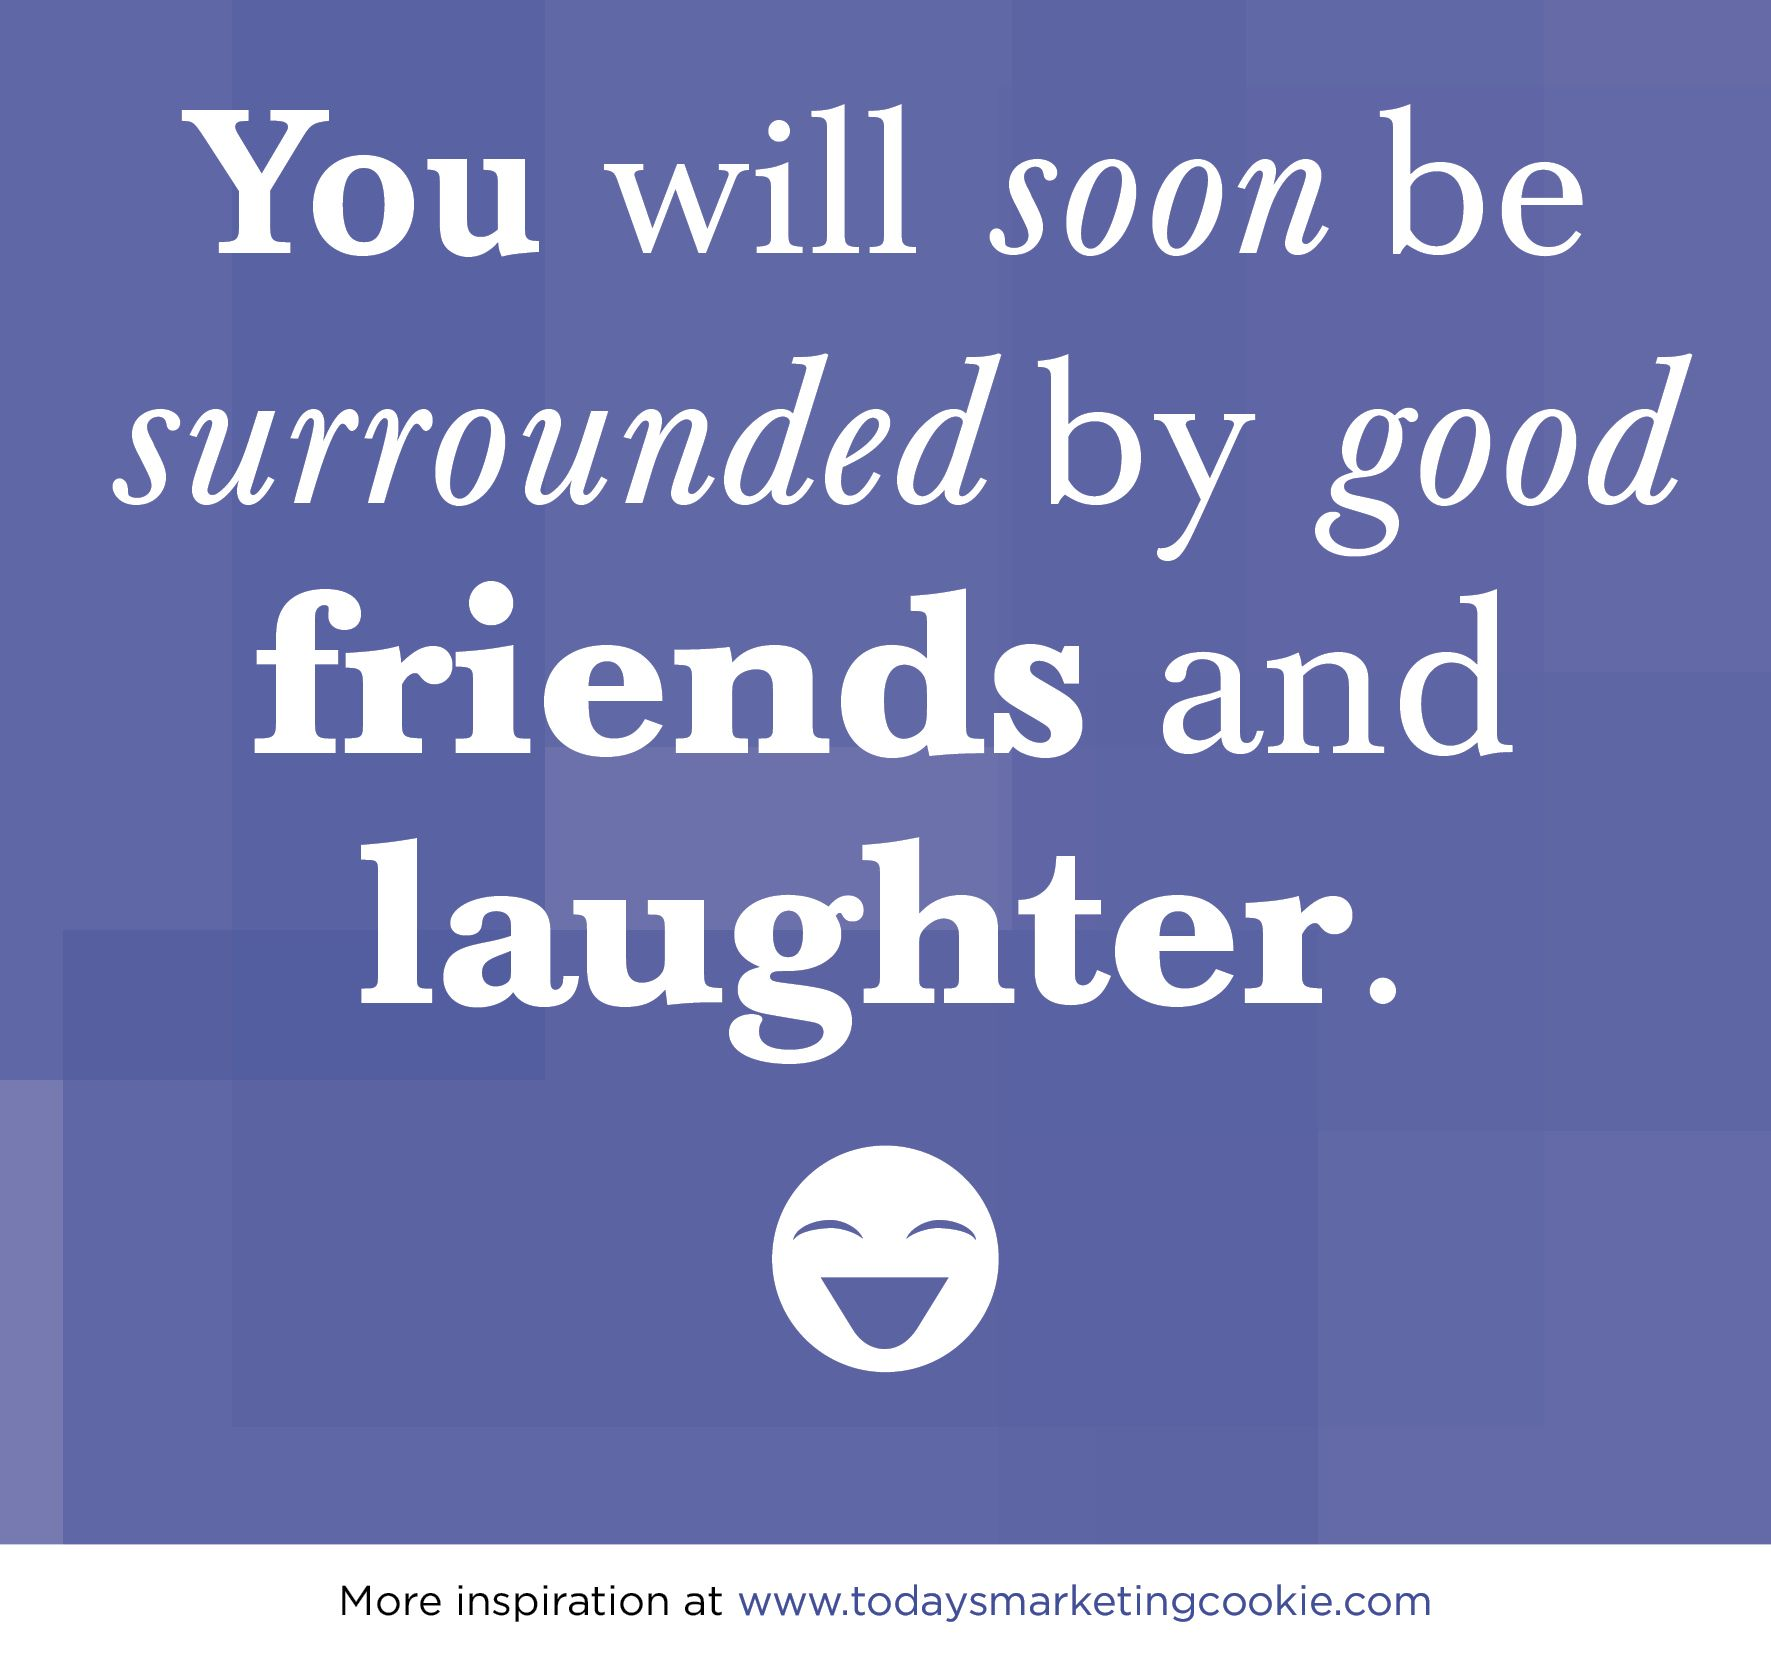 You Will Soon Be Surrounded By Good Friends And Laughter Funny Quotes Marketing Cookies Best Friends